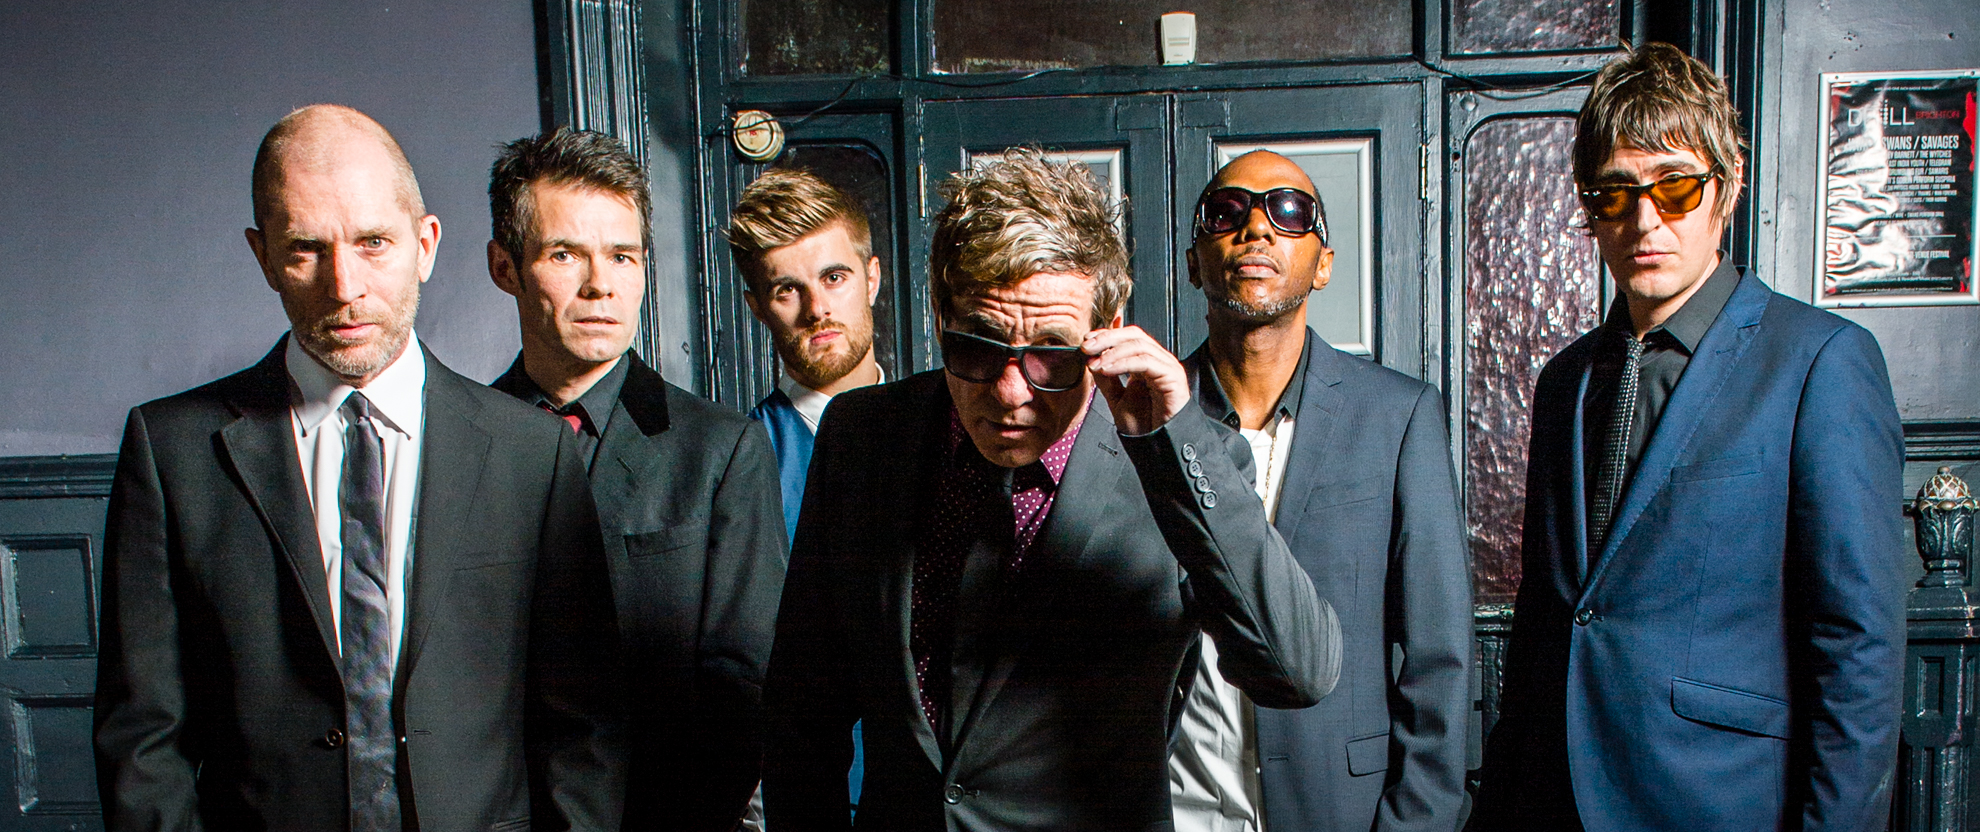 HERE'S LOOKING AT YOU: The Dub Pistols are at Dorchester Corn Exchange next Saturday, March 17